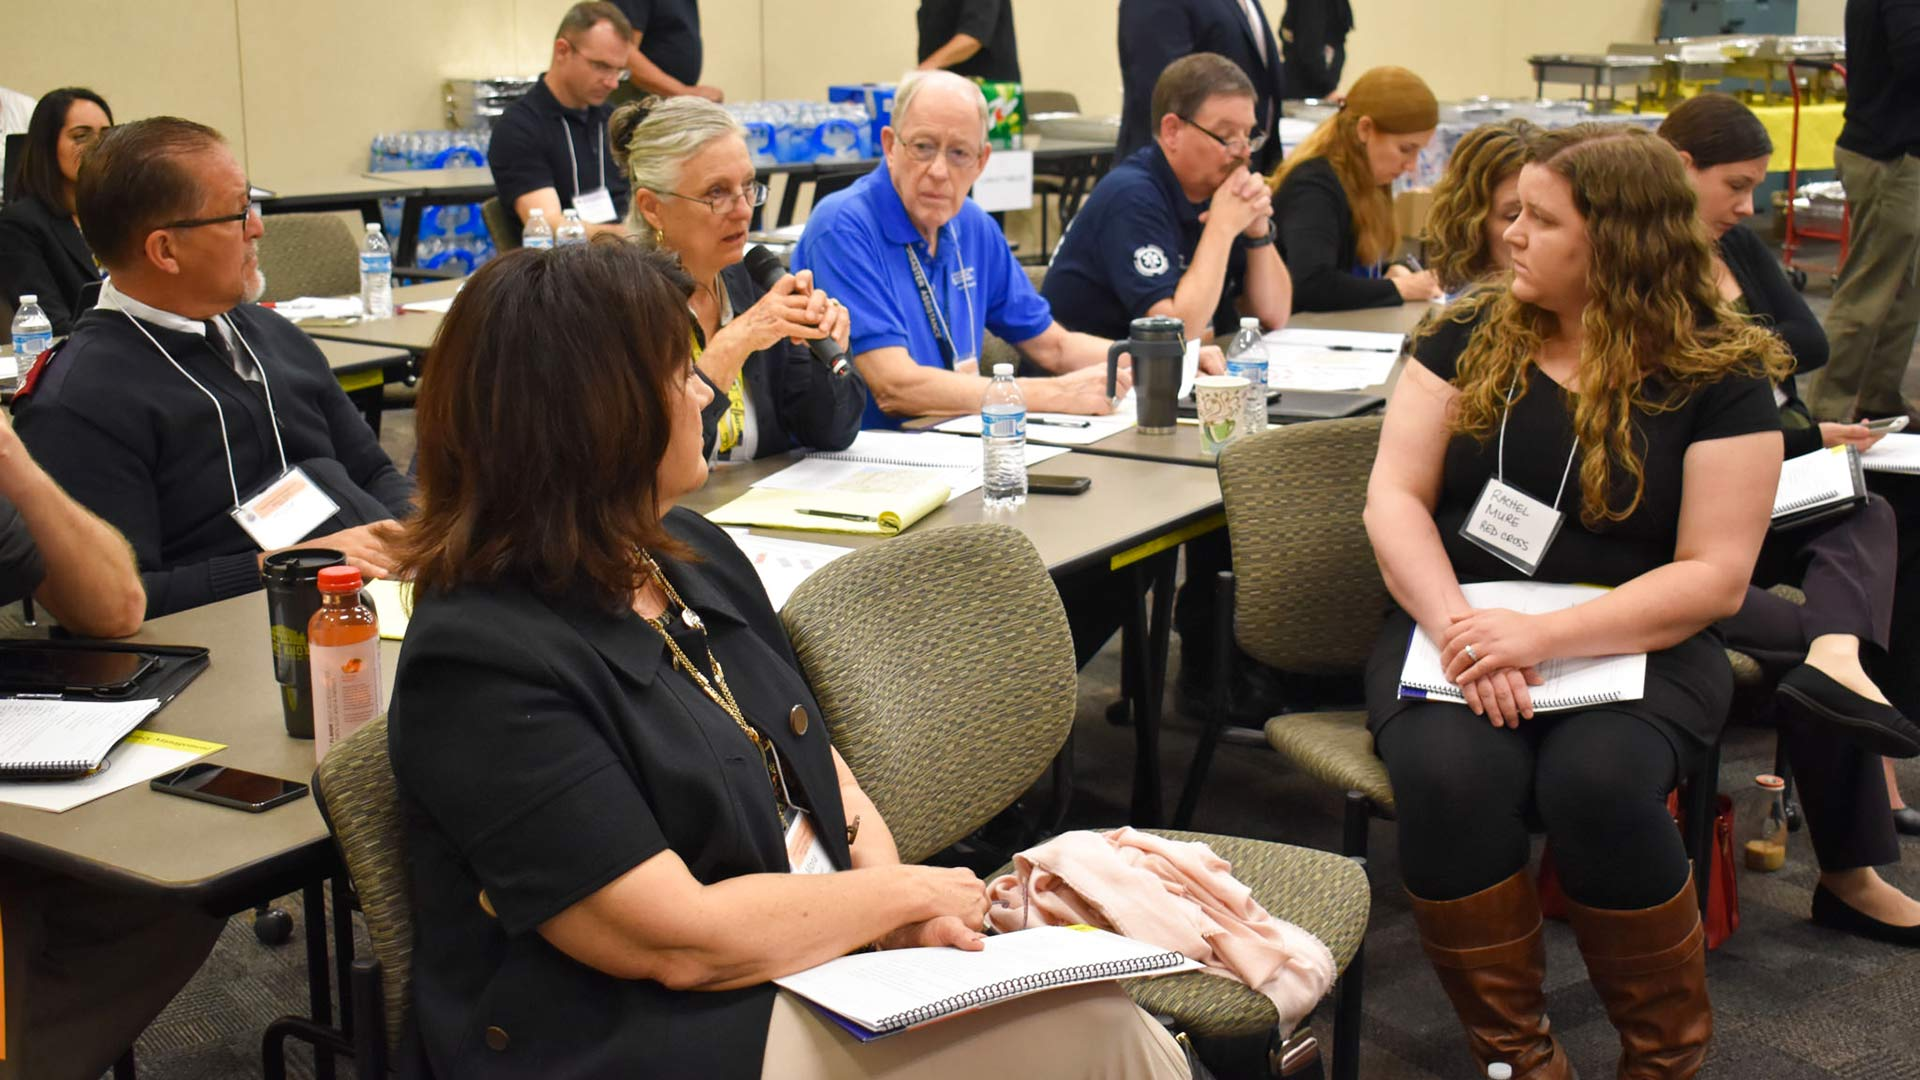 Participants at a National Mass Care Tabletop Exercise, on Feb. 13, 2018, an event put on for Arizona groups in preparation for the National Mass Care Exercise, according to the Arizona Department of Emergency and Military Affairs (DEMA).